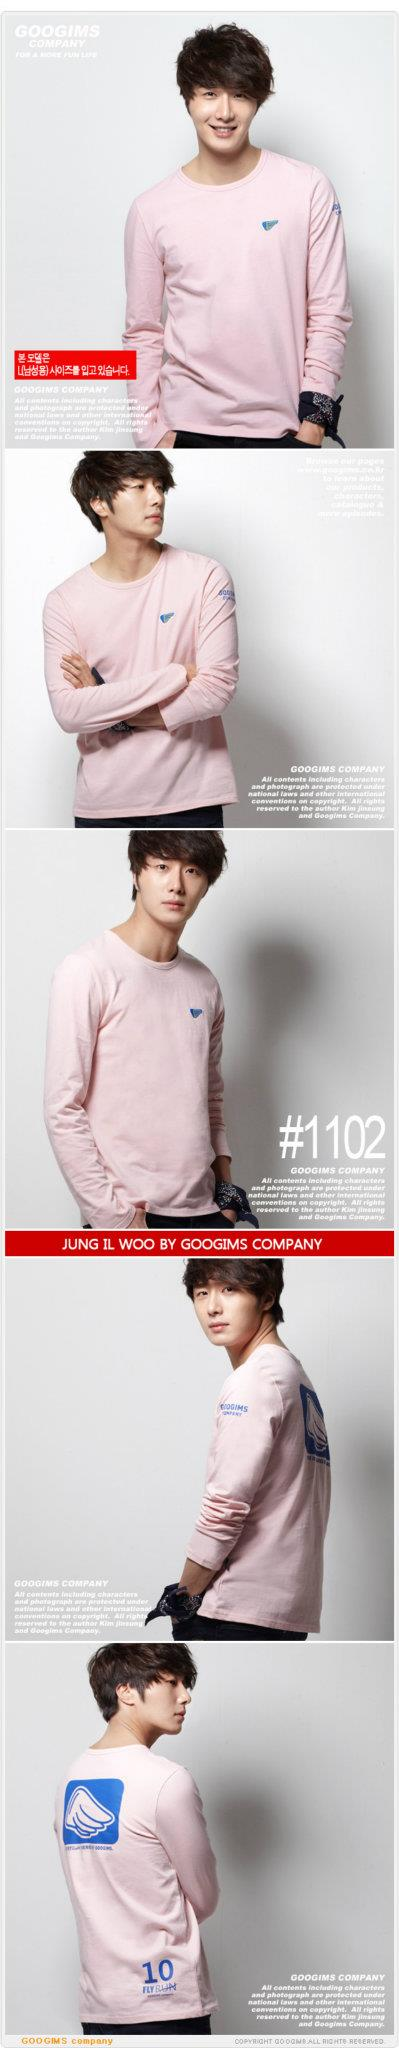 2011 10 Jung II-woo for Googims. Part 100035